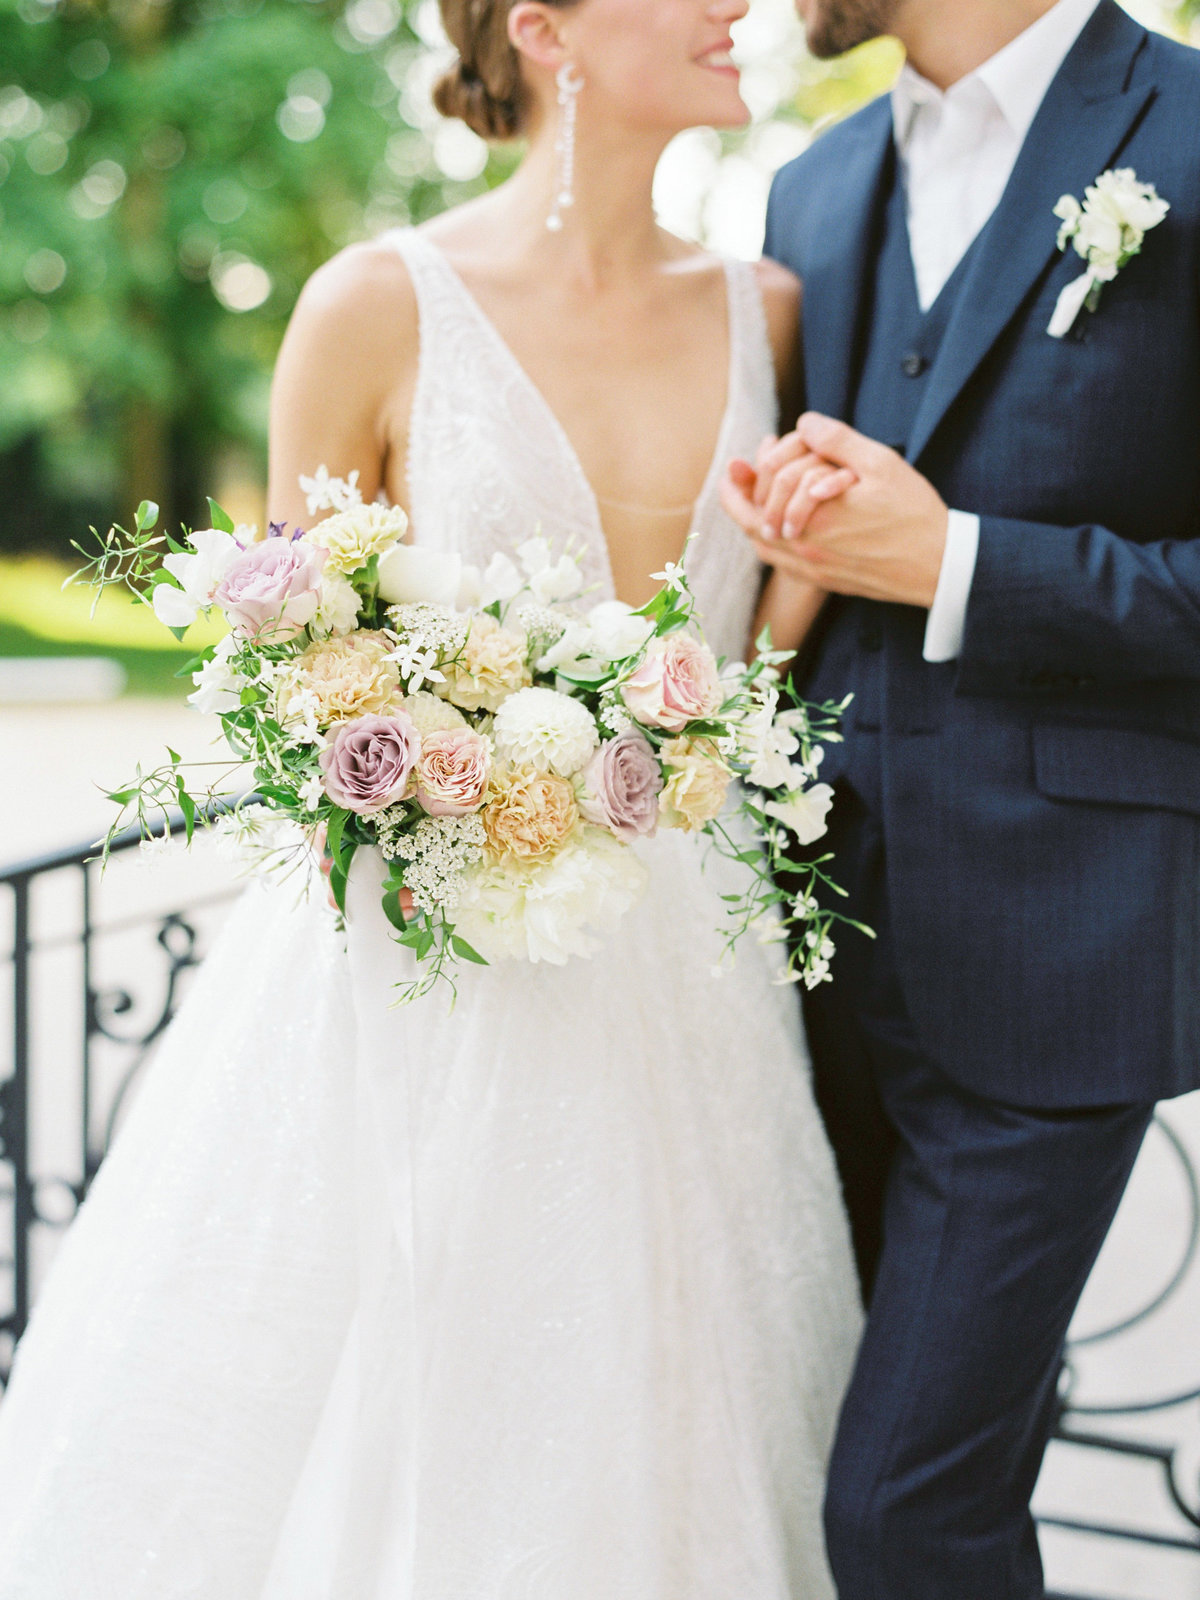 Luxurious french chateau wedding amelia soegijono0030